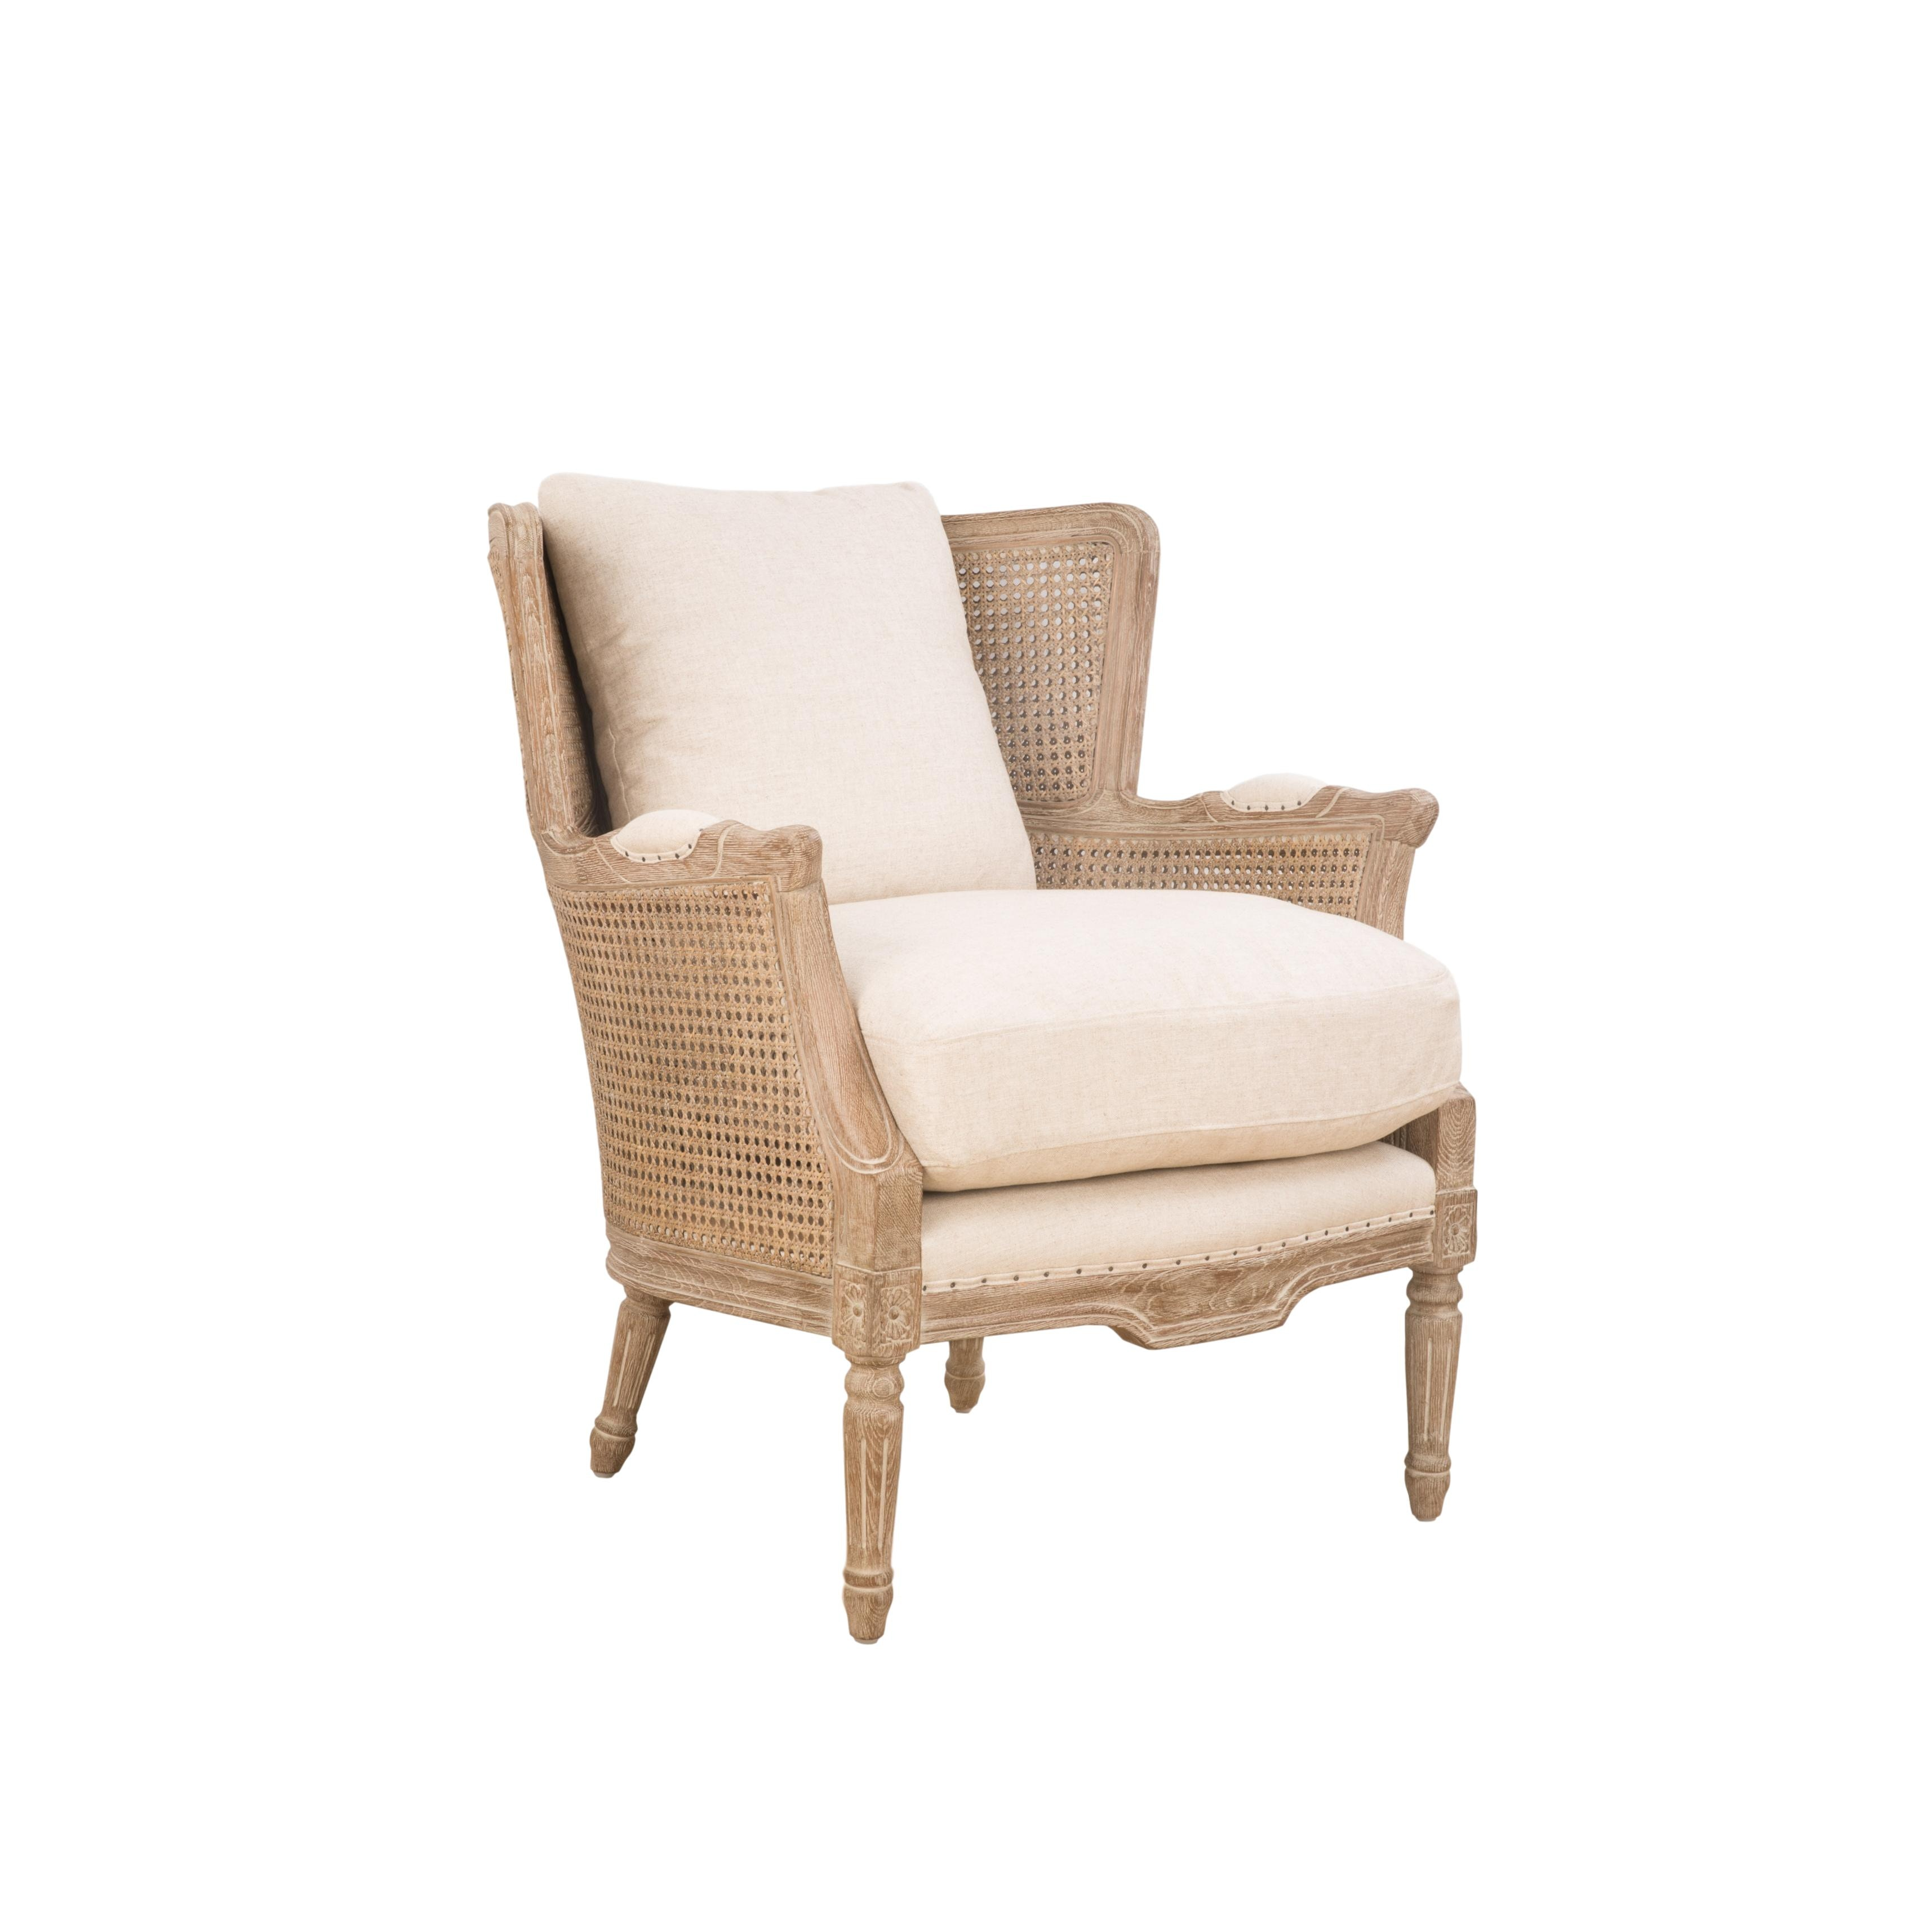 Atelier Home Natural Larue Chair